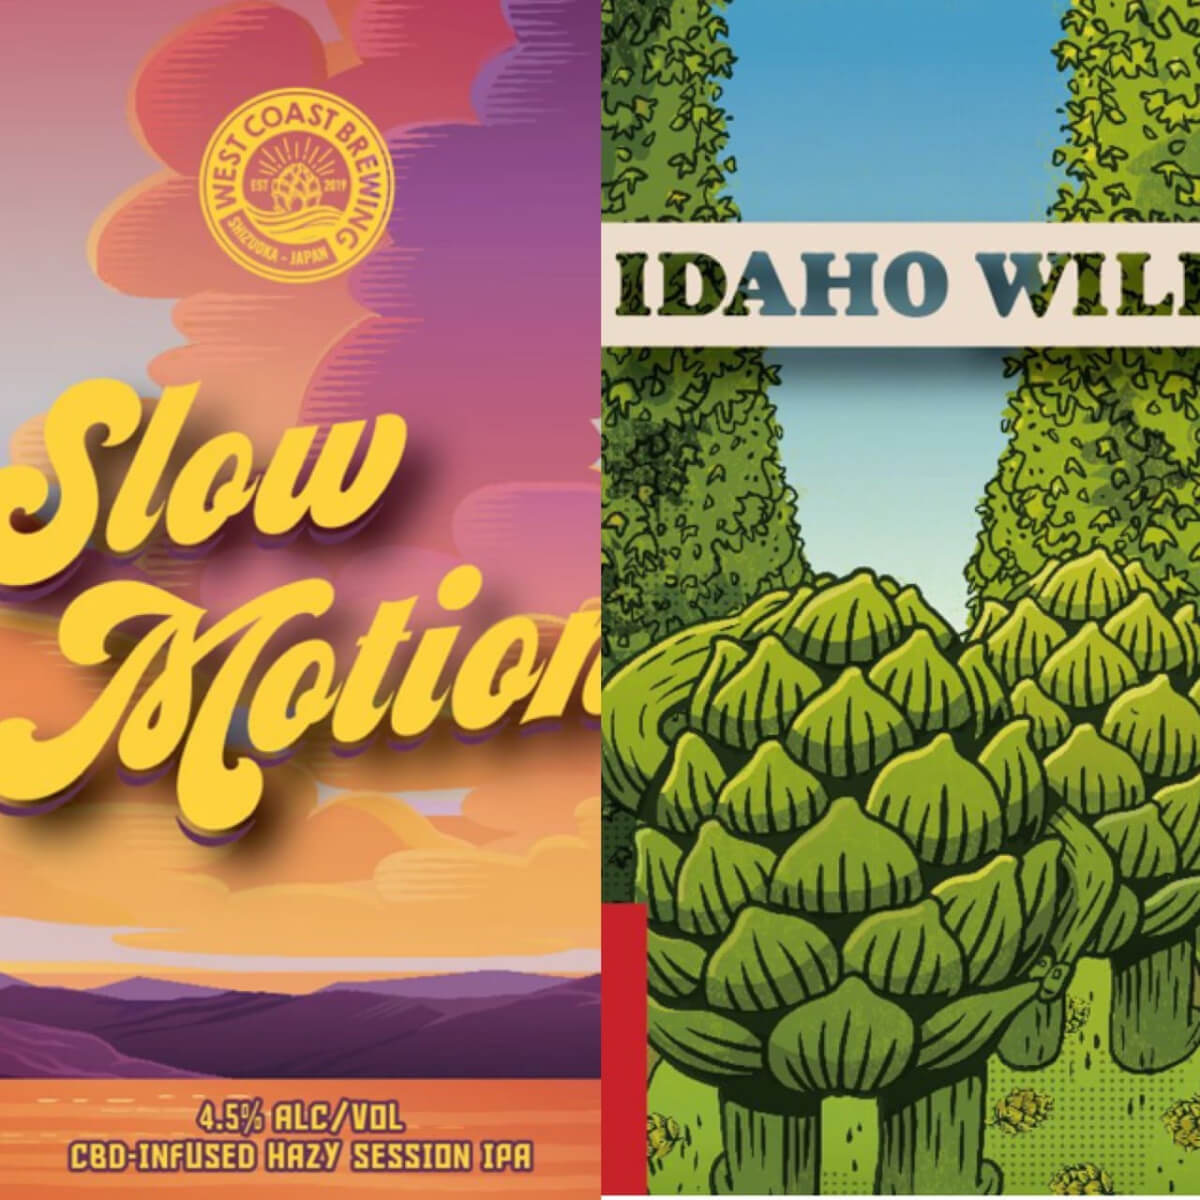 Idaho Wild x Slow Motion